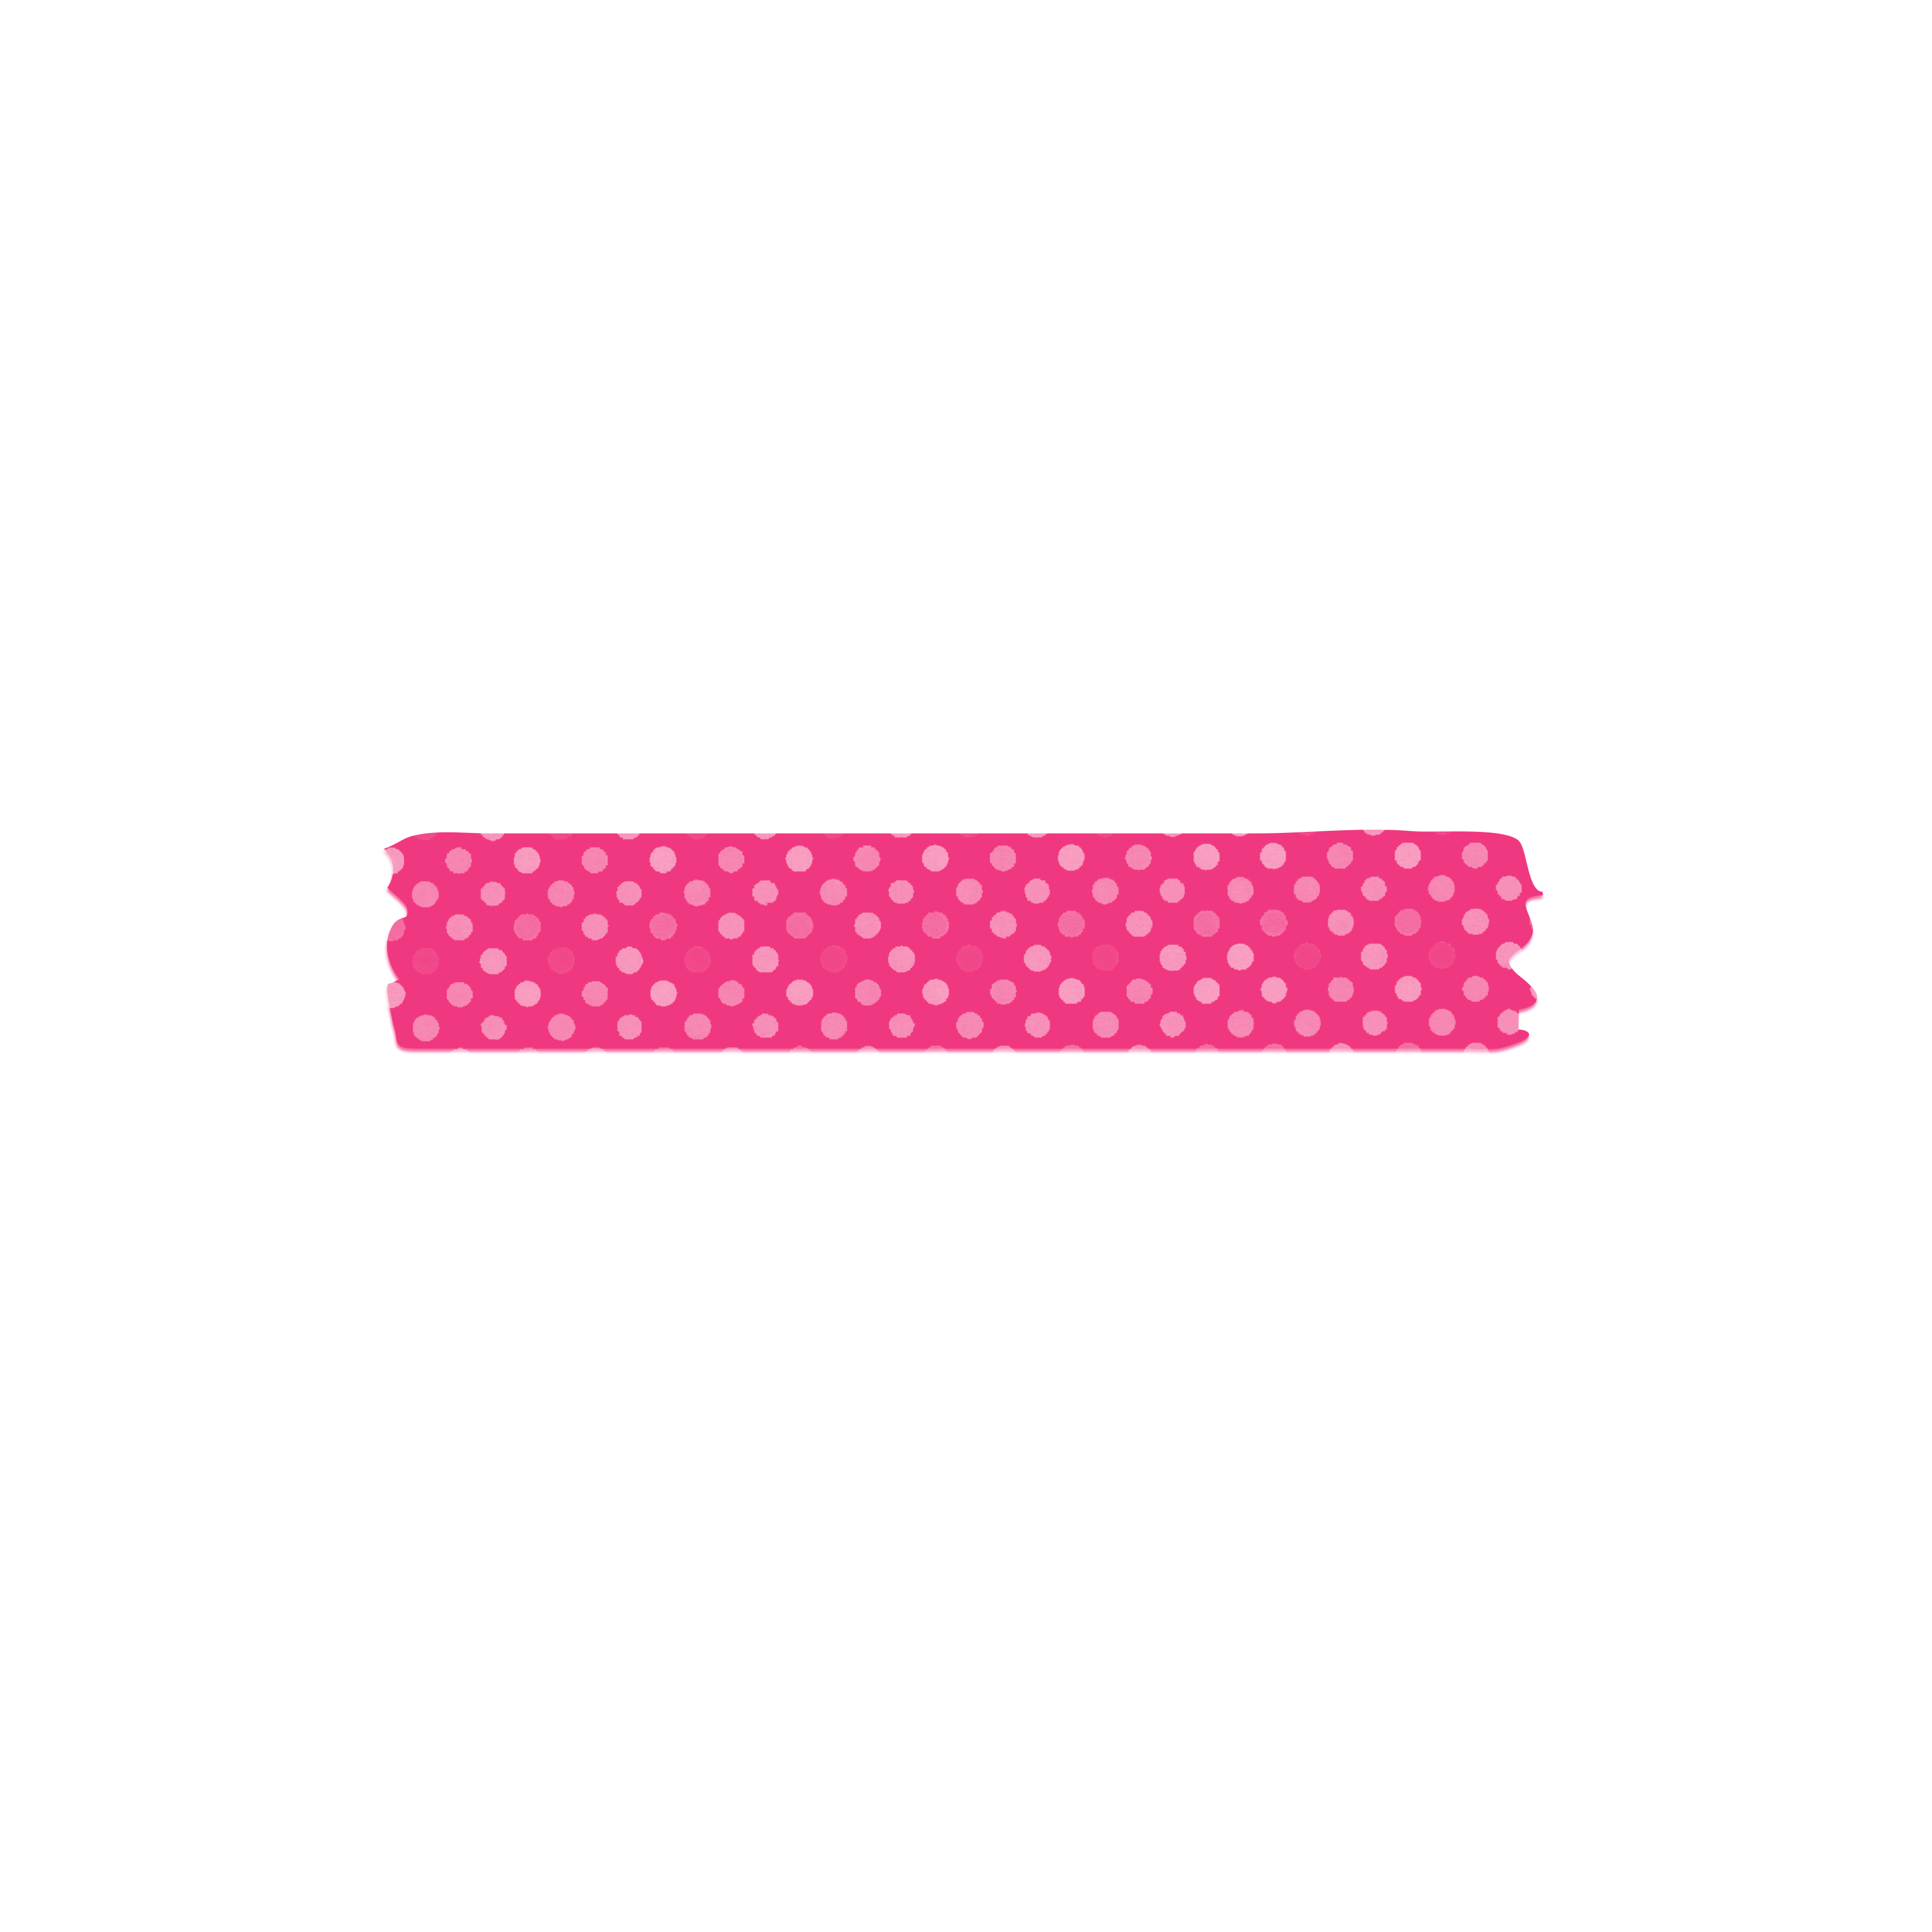 Pink Tape Png image #44318